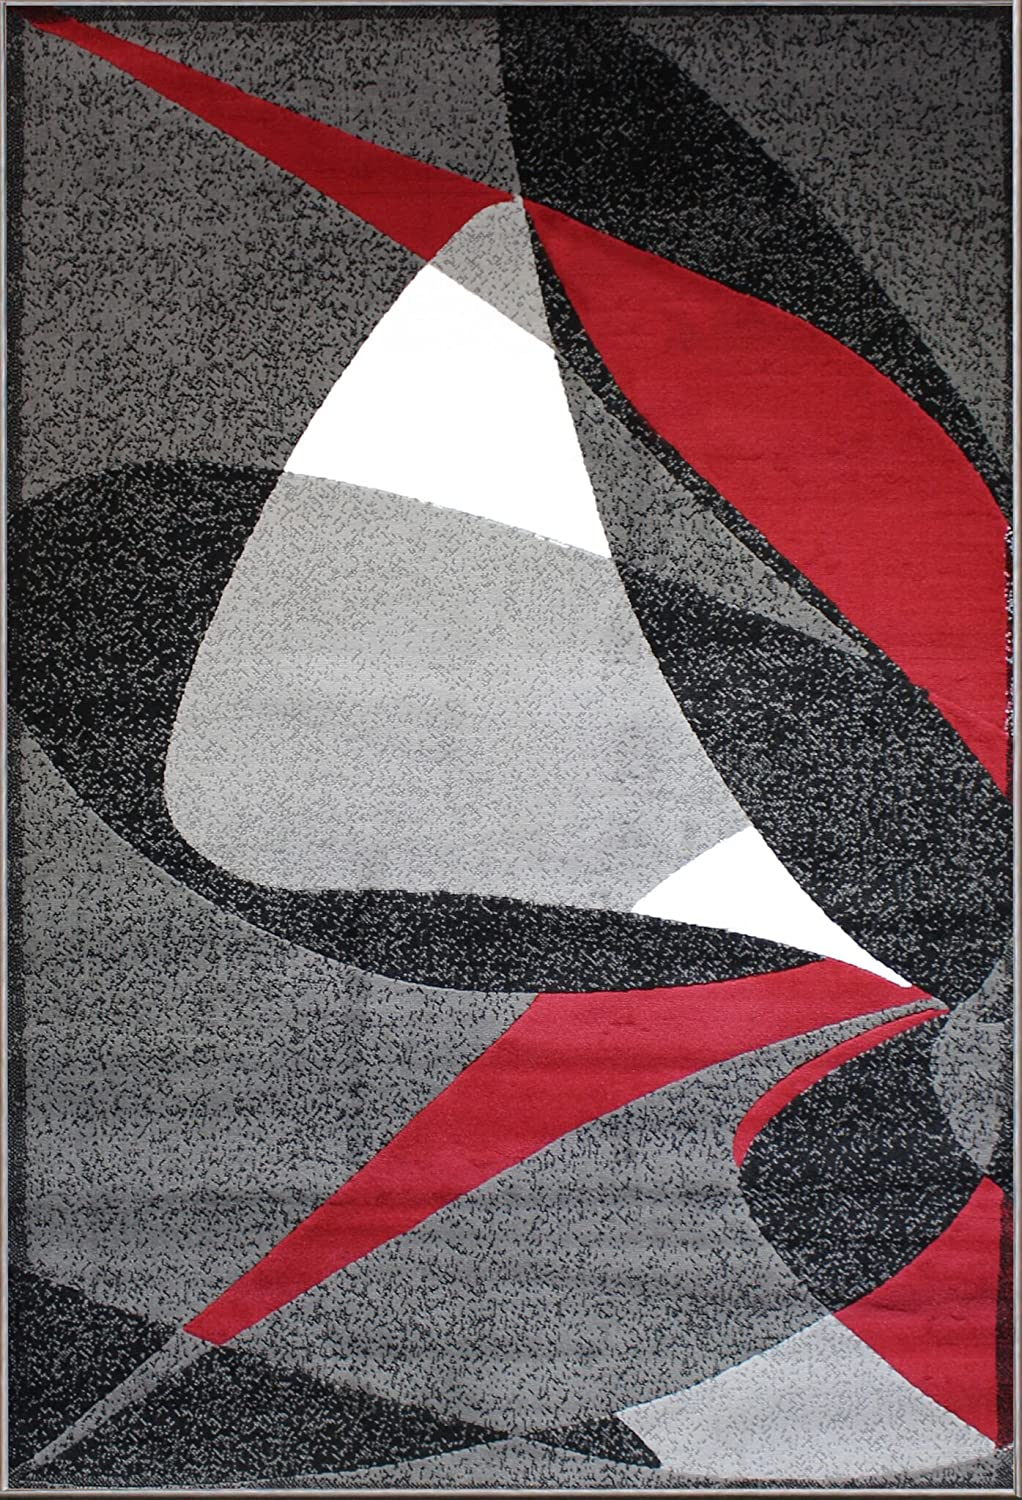 Gray Black Red White Modern Abstract Area Rugs Carpets New Size Options Available (5